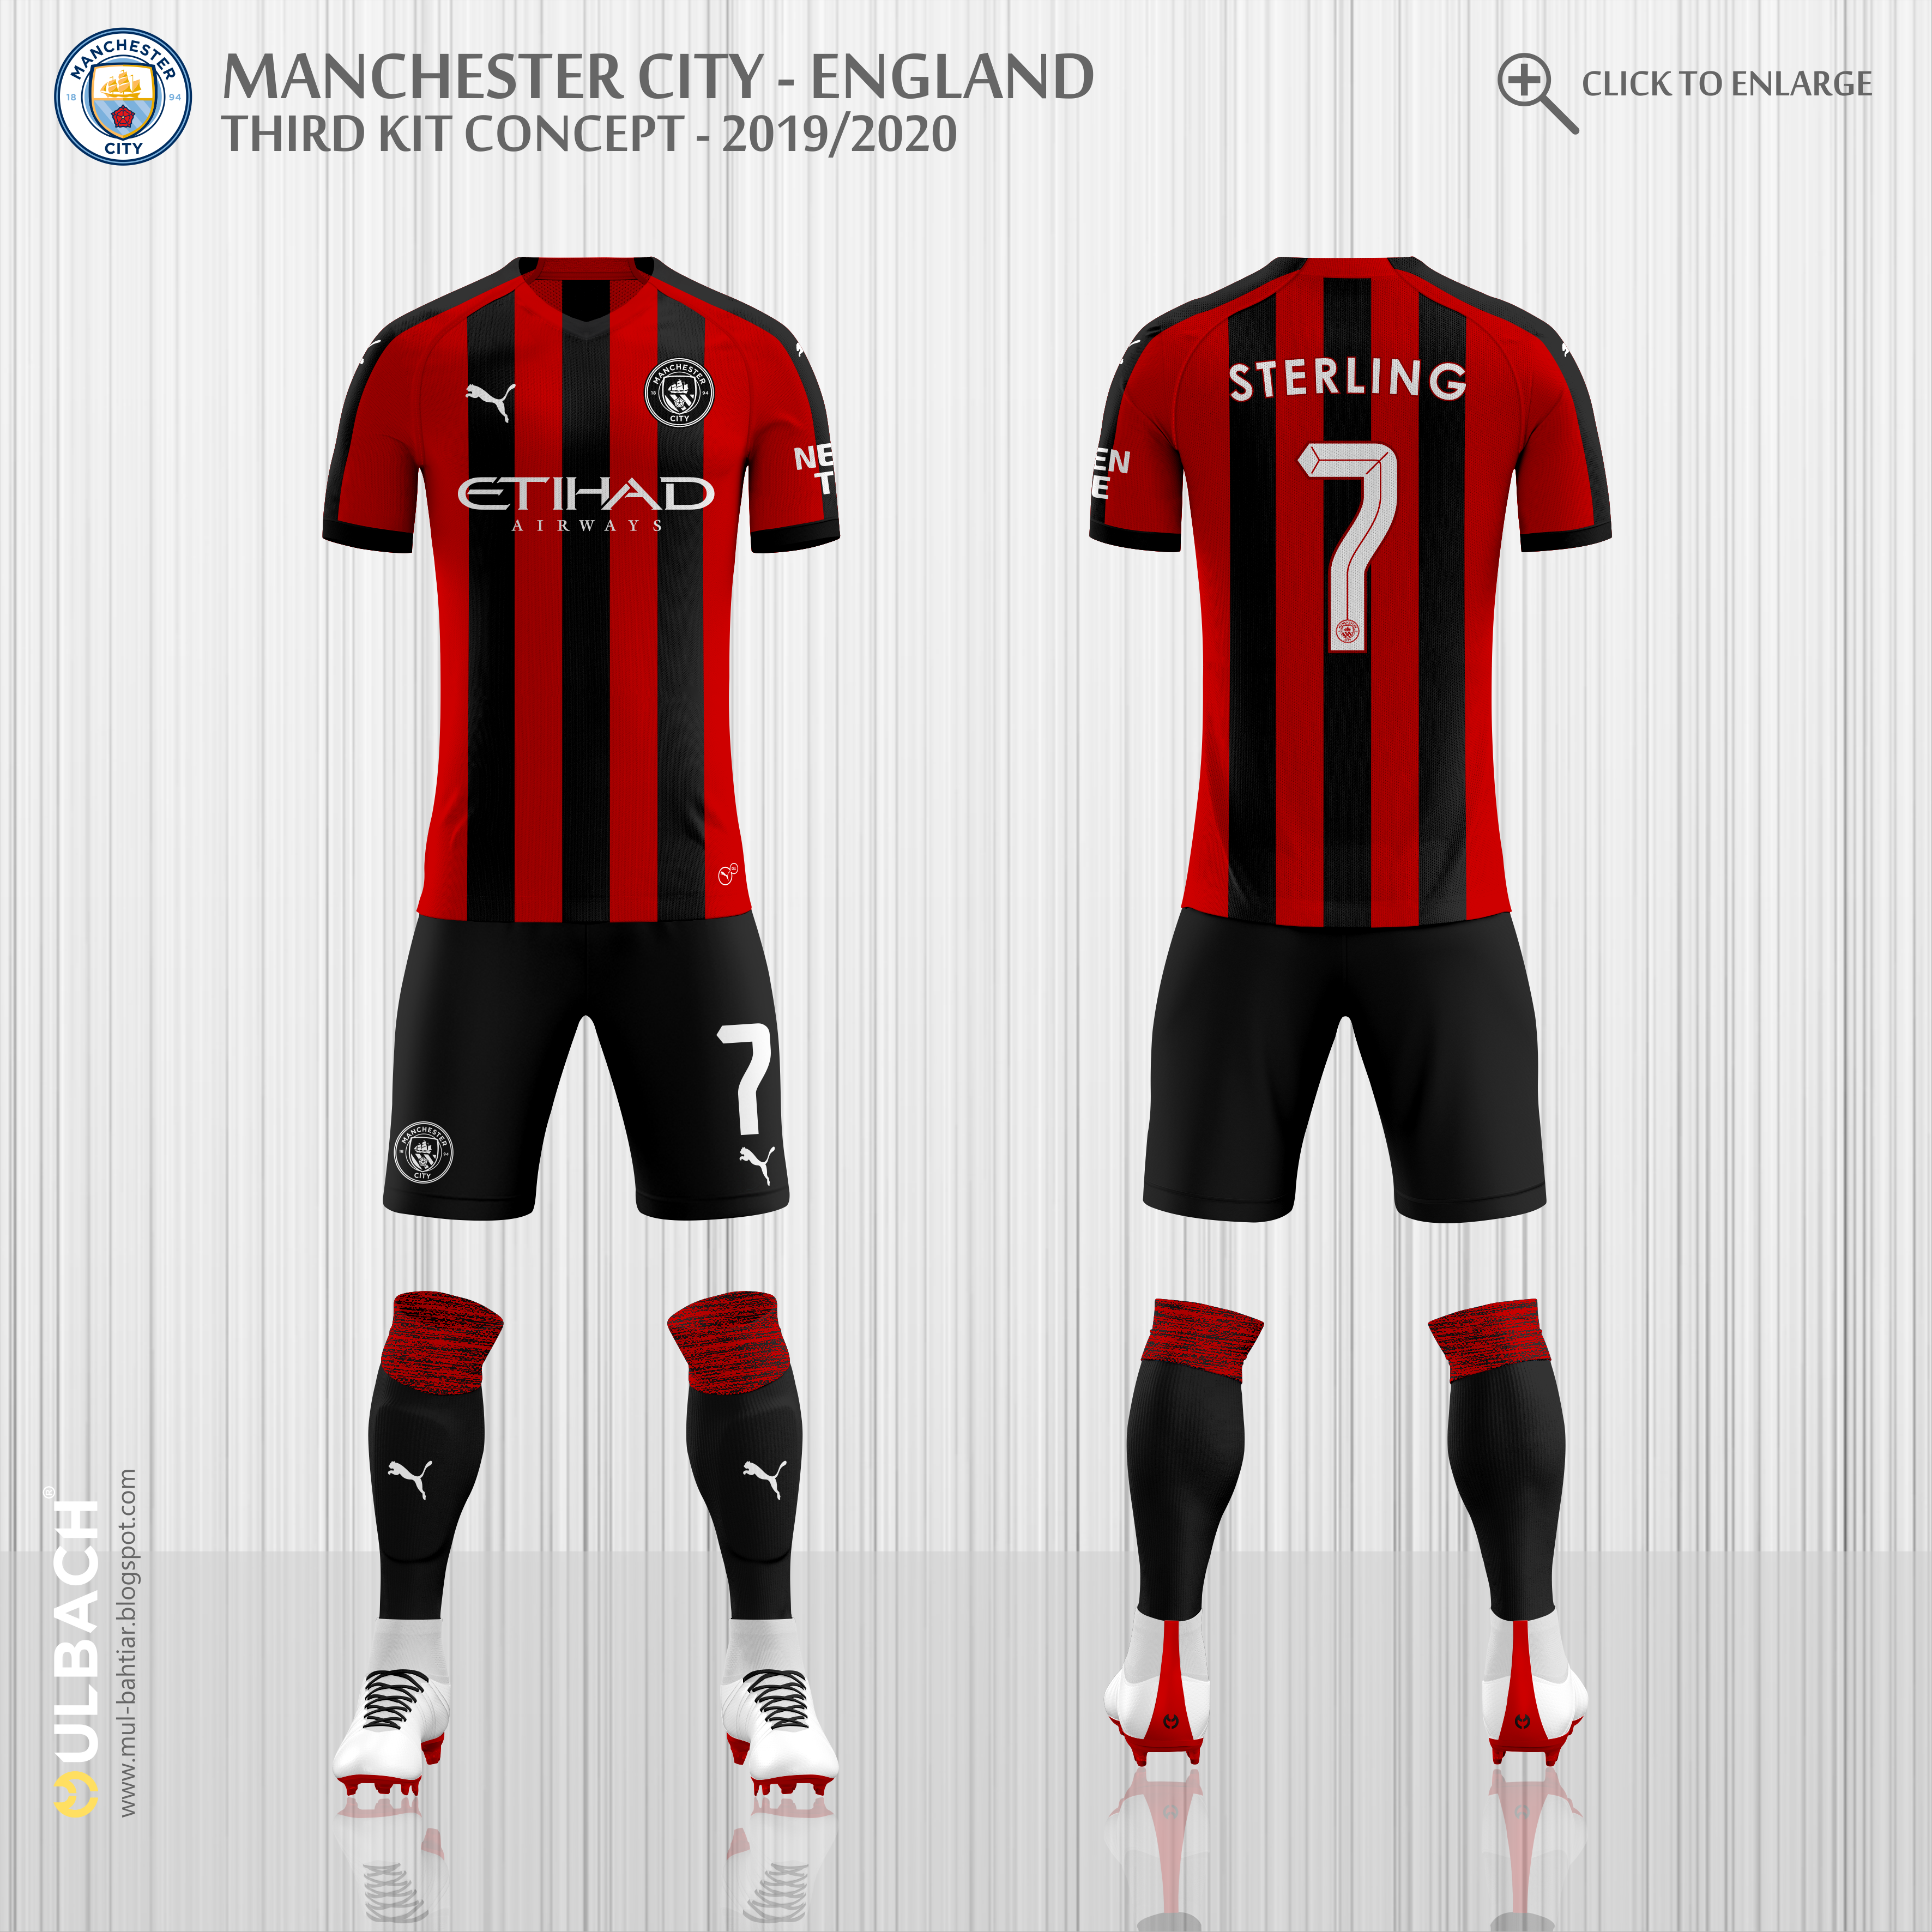 Manchester City 2019 2020 Puma Kits Concept on Behance c5a59fe331534